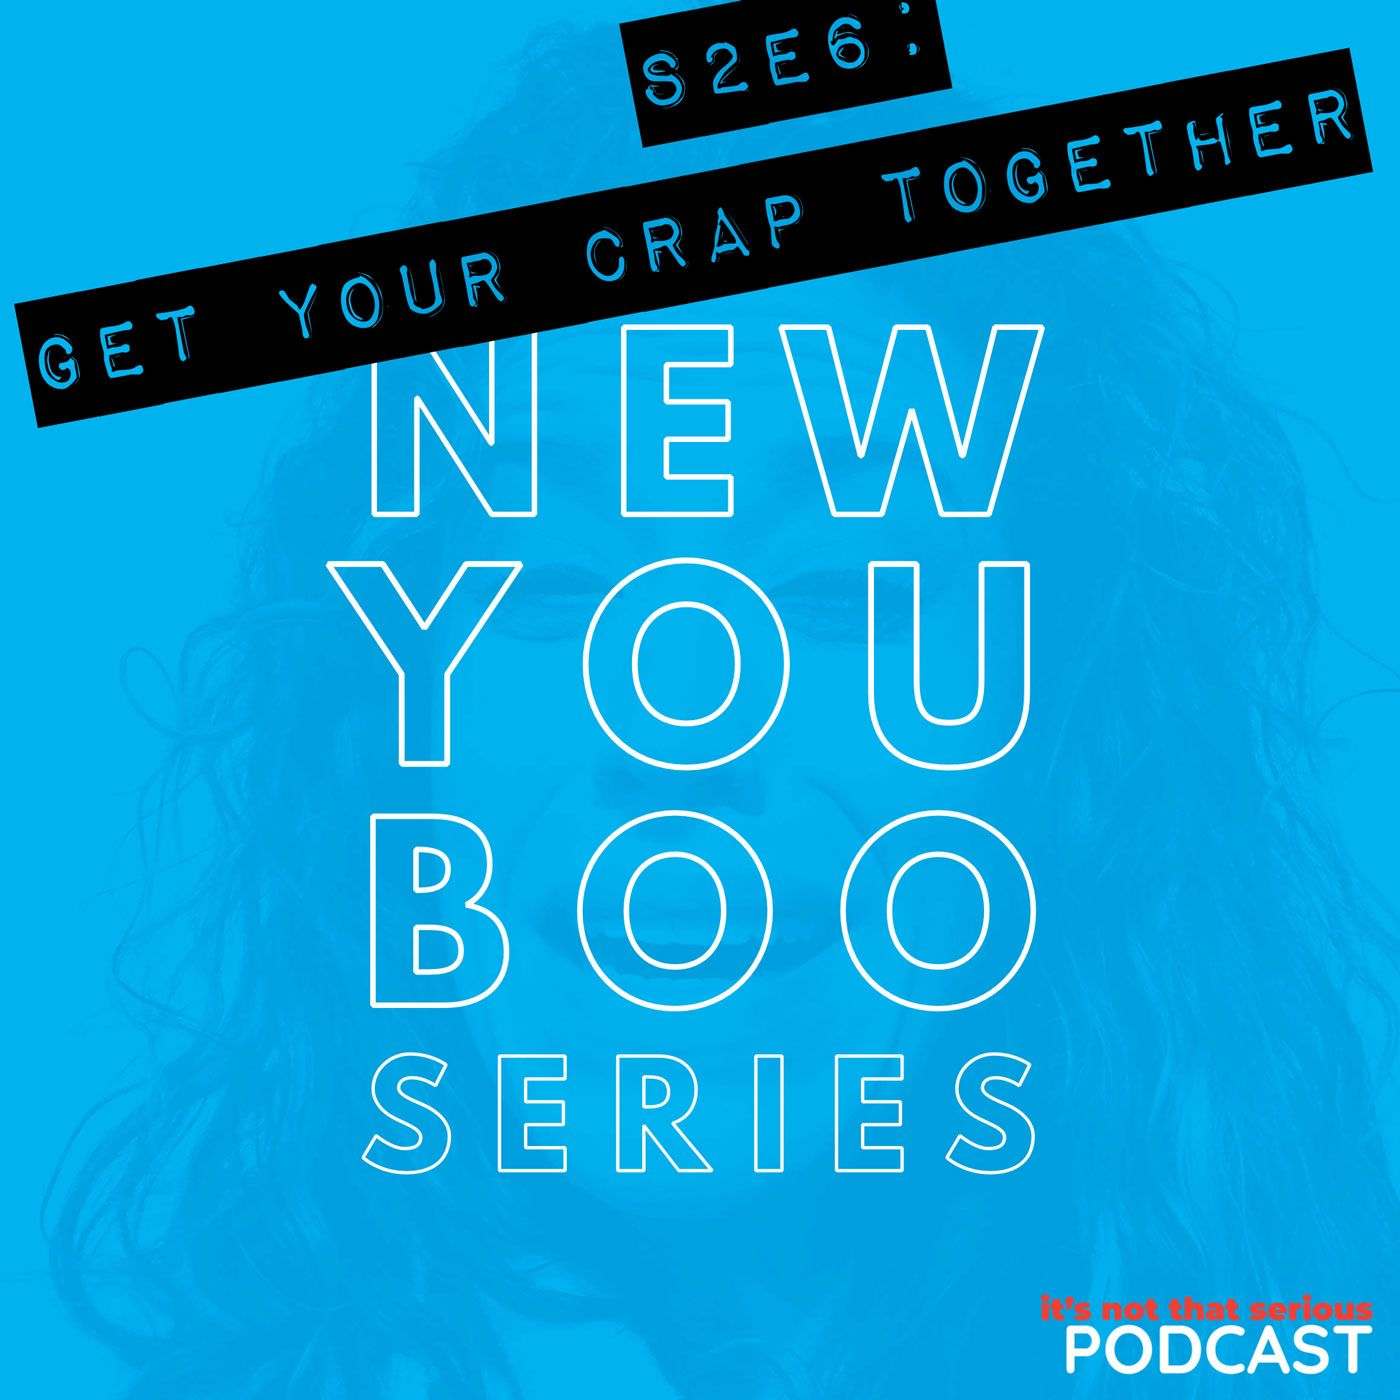 S2E6: Get Your Crap Together | New You Boo Series